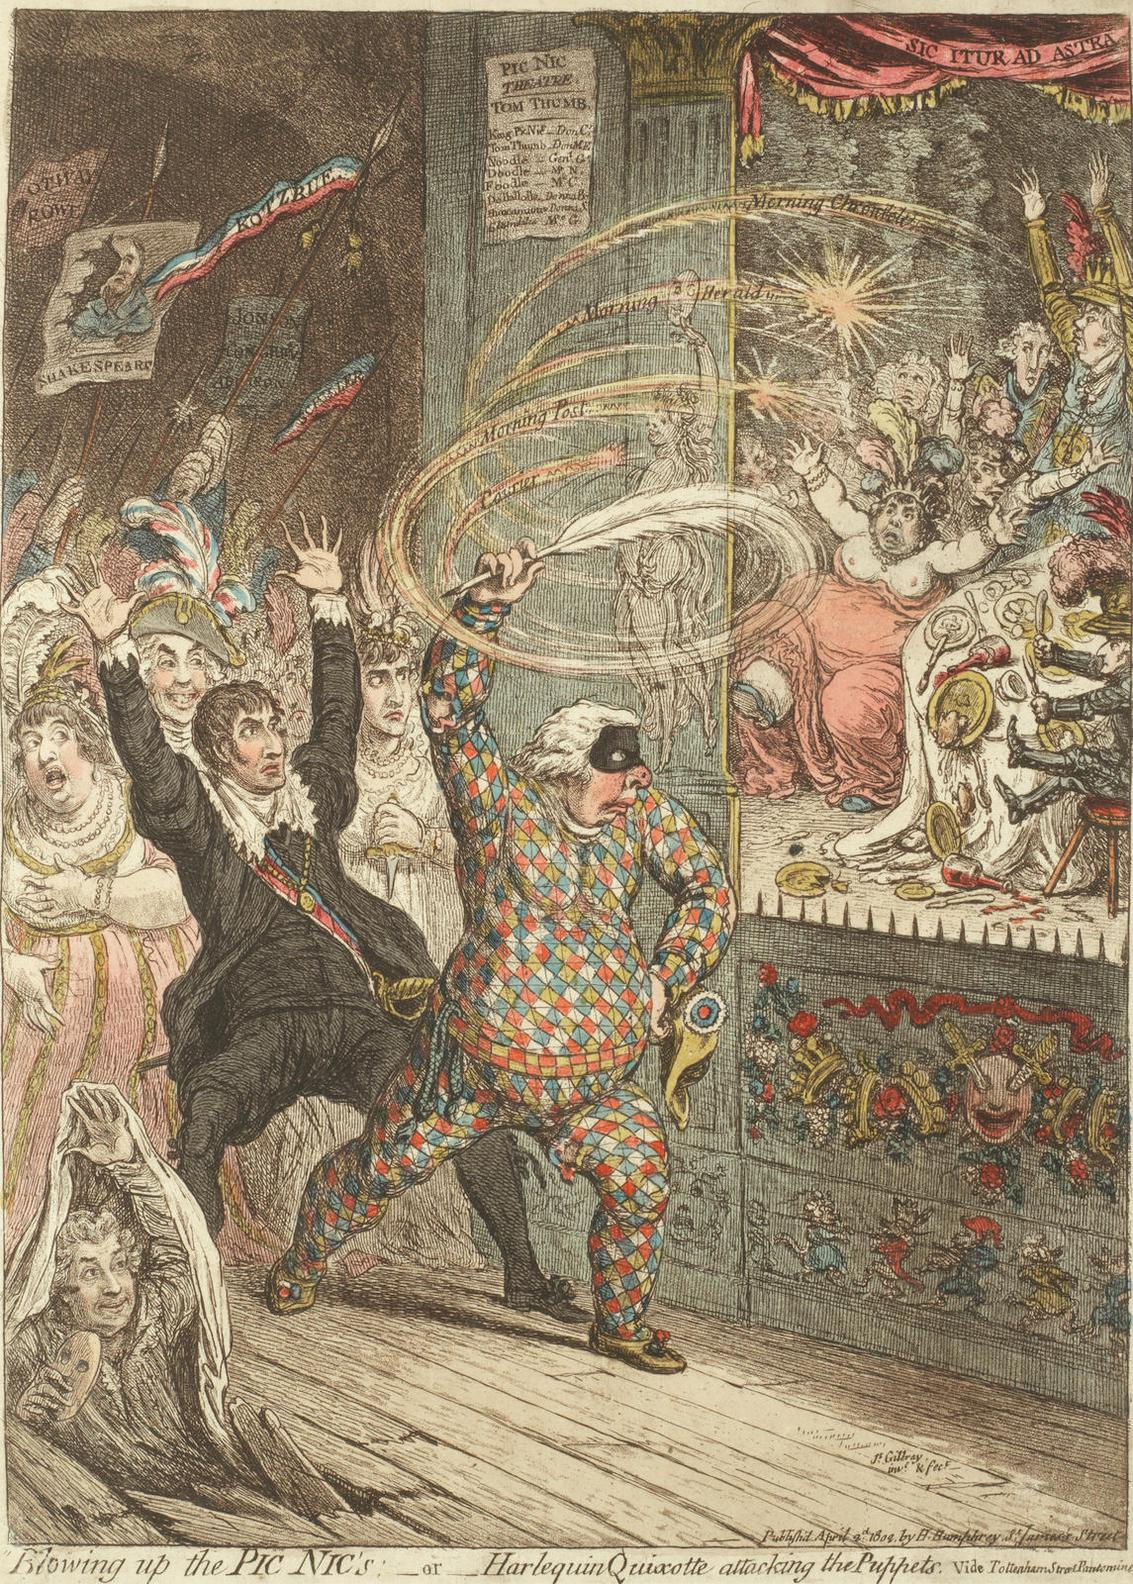 James Gillray-Blowing Up The Pic Nics - Or - Harlequin Quixote Attacking The Puppets-1802